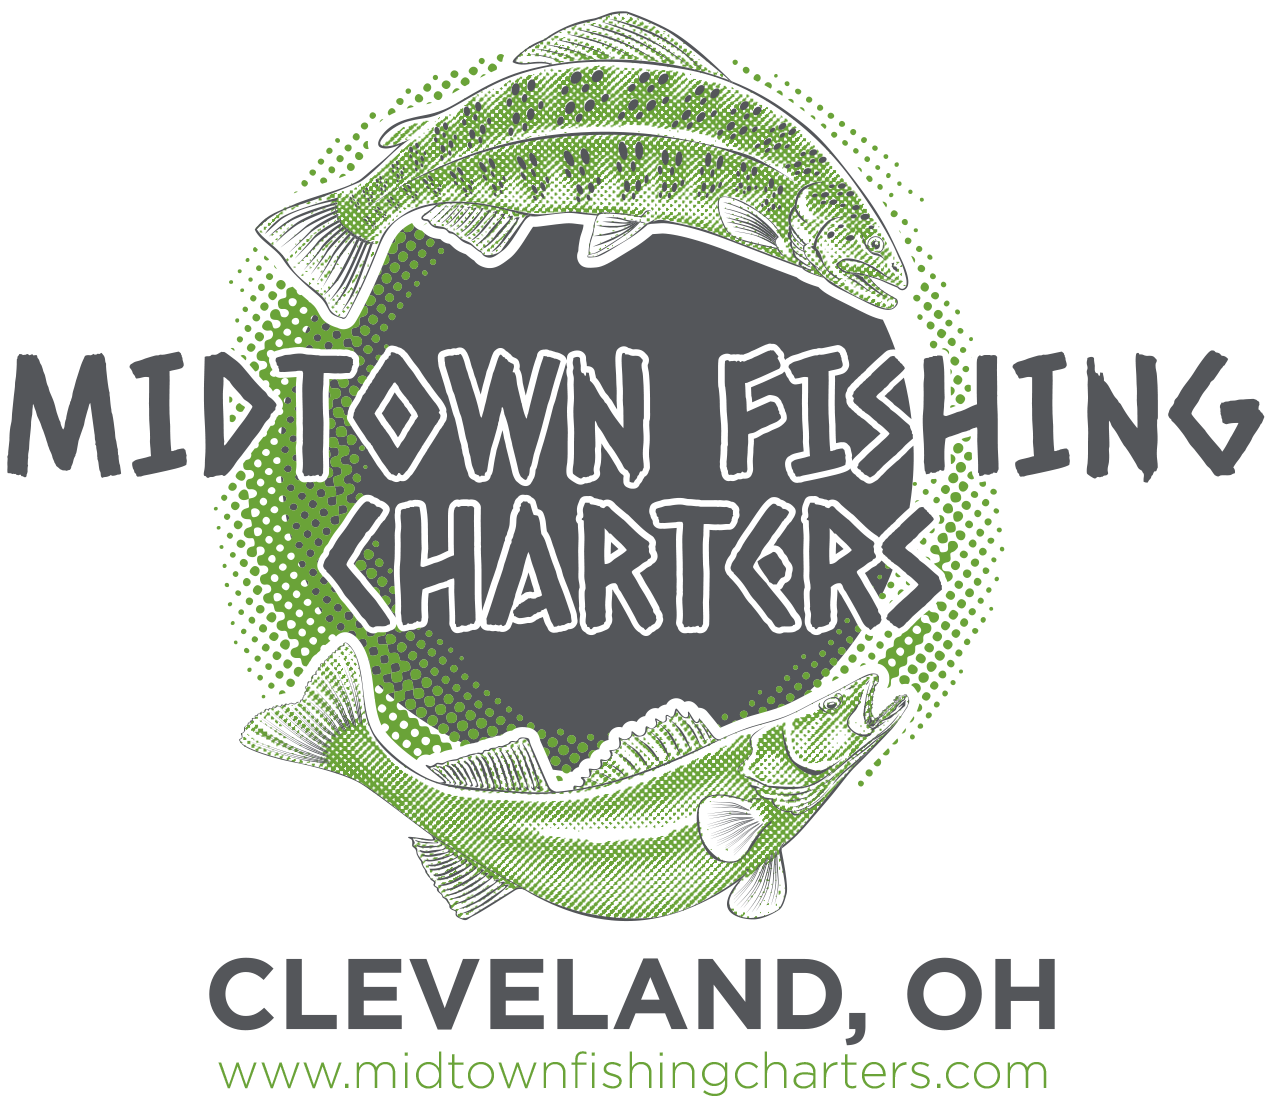 Midtown Fishing Charters